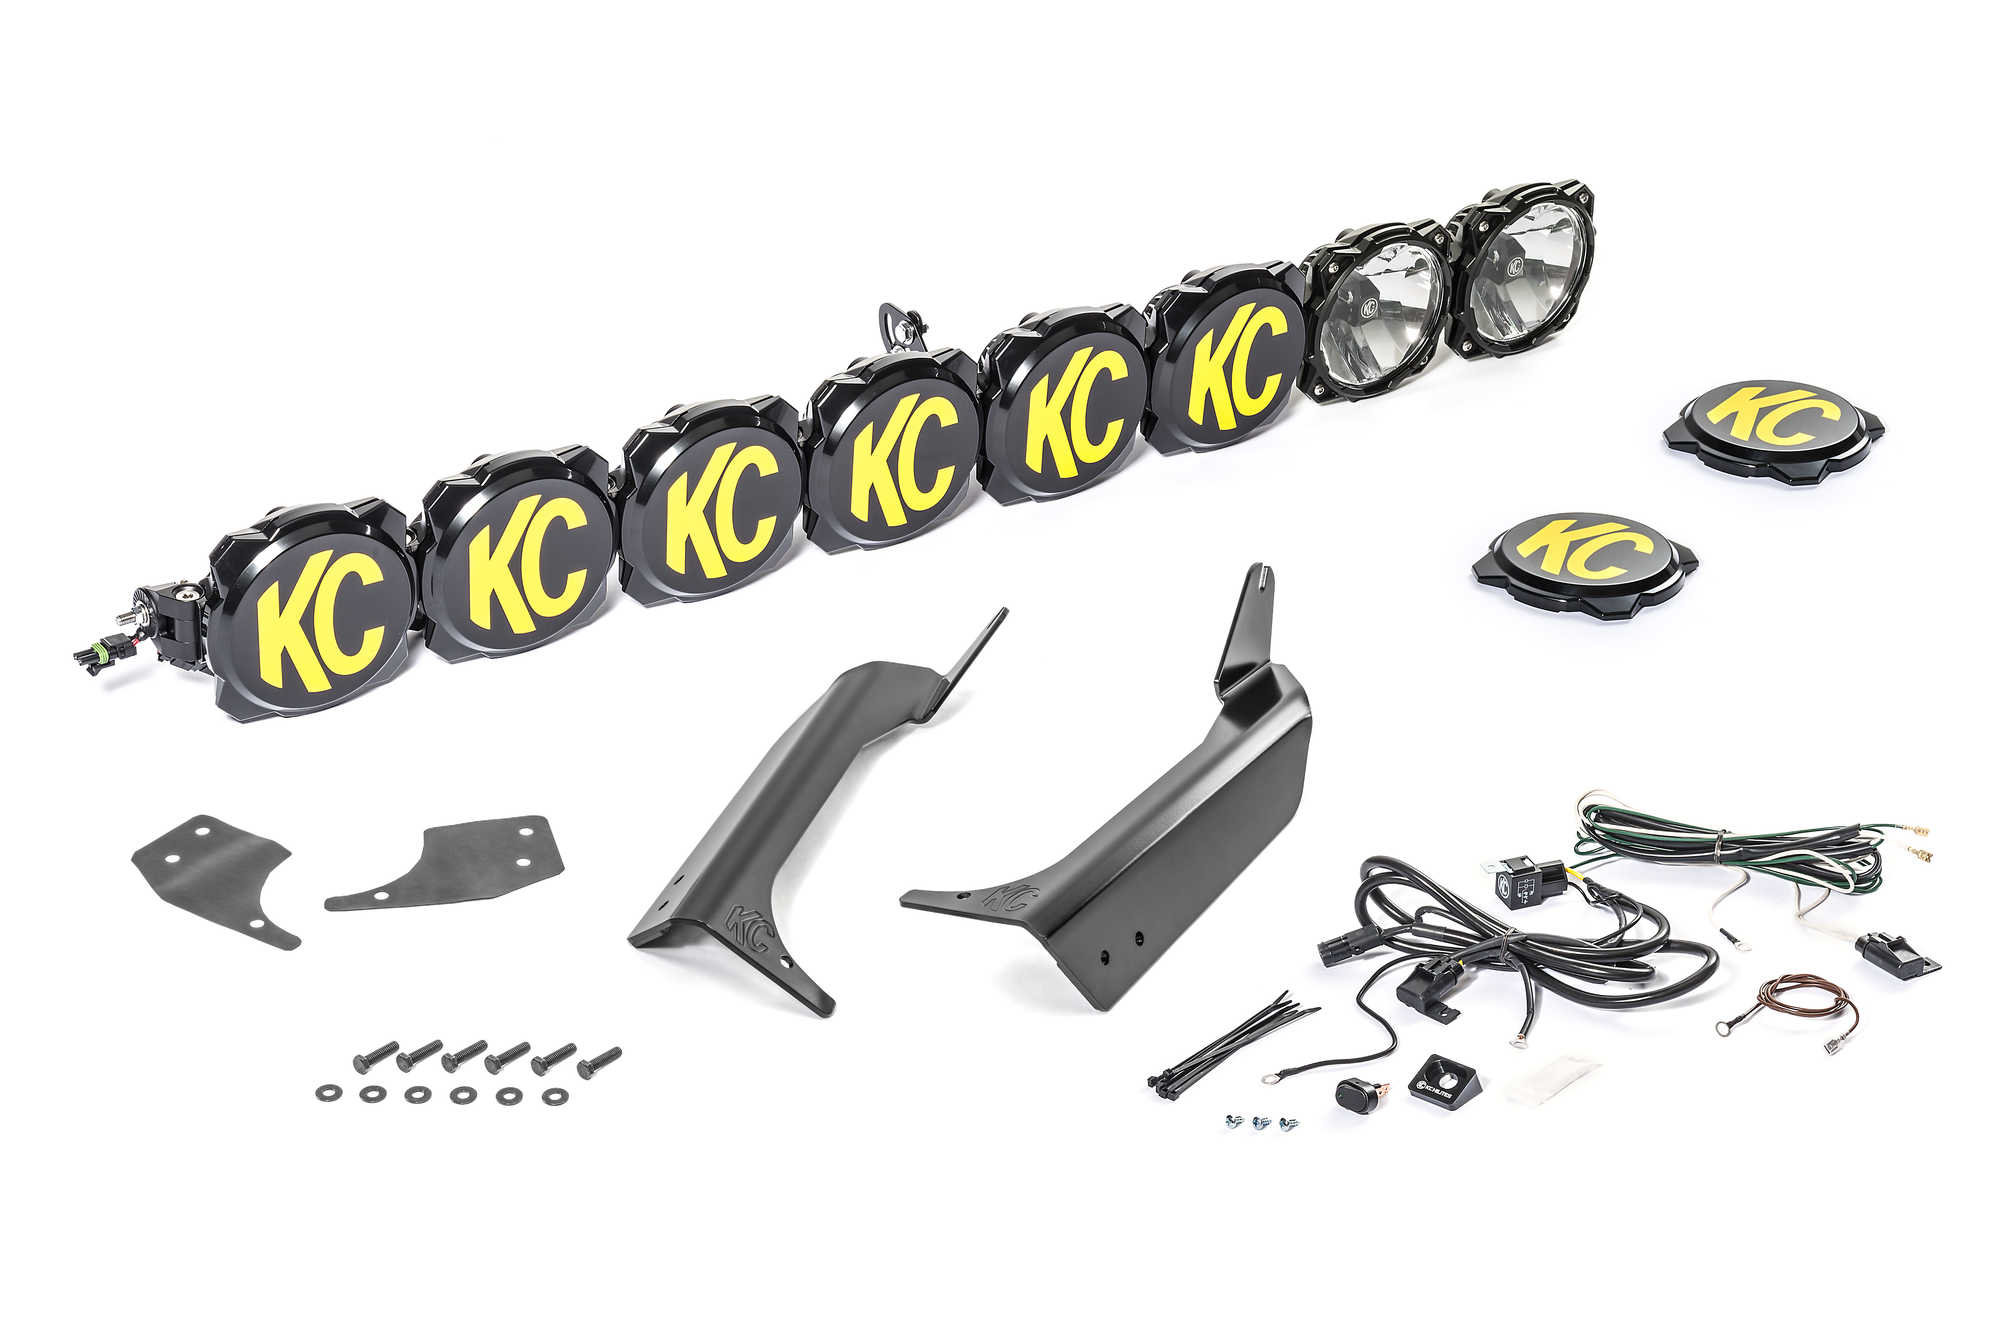 Wiring Light Bar Jeep Wrangler